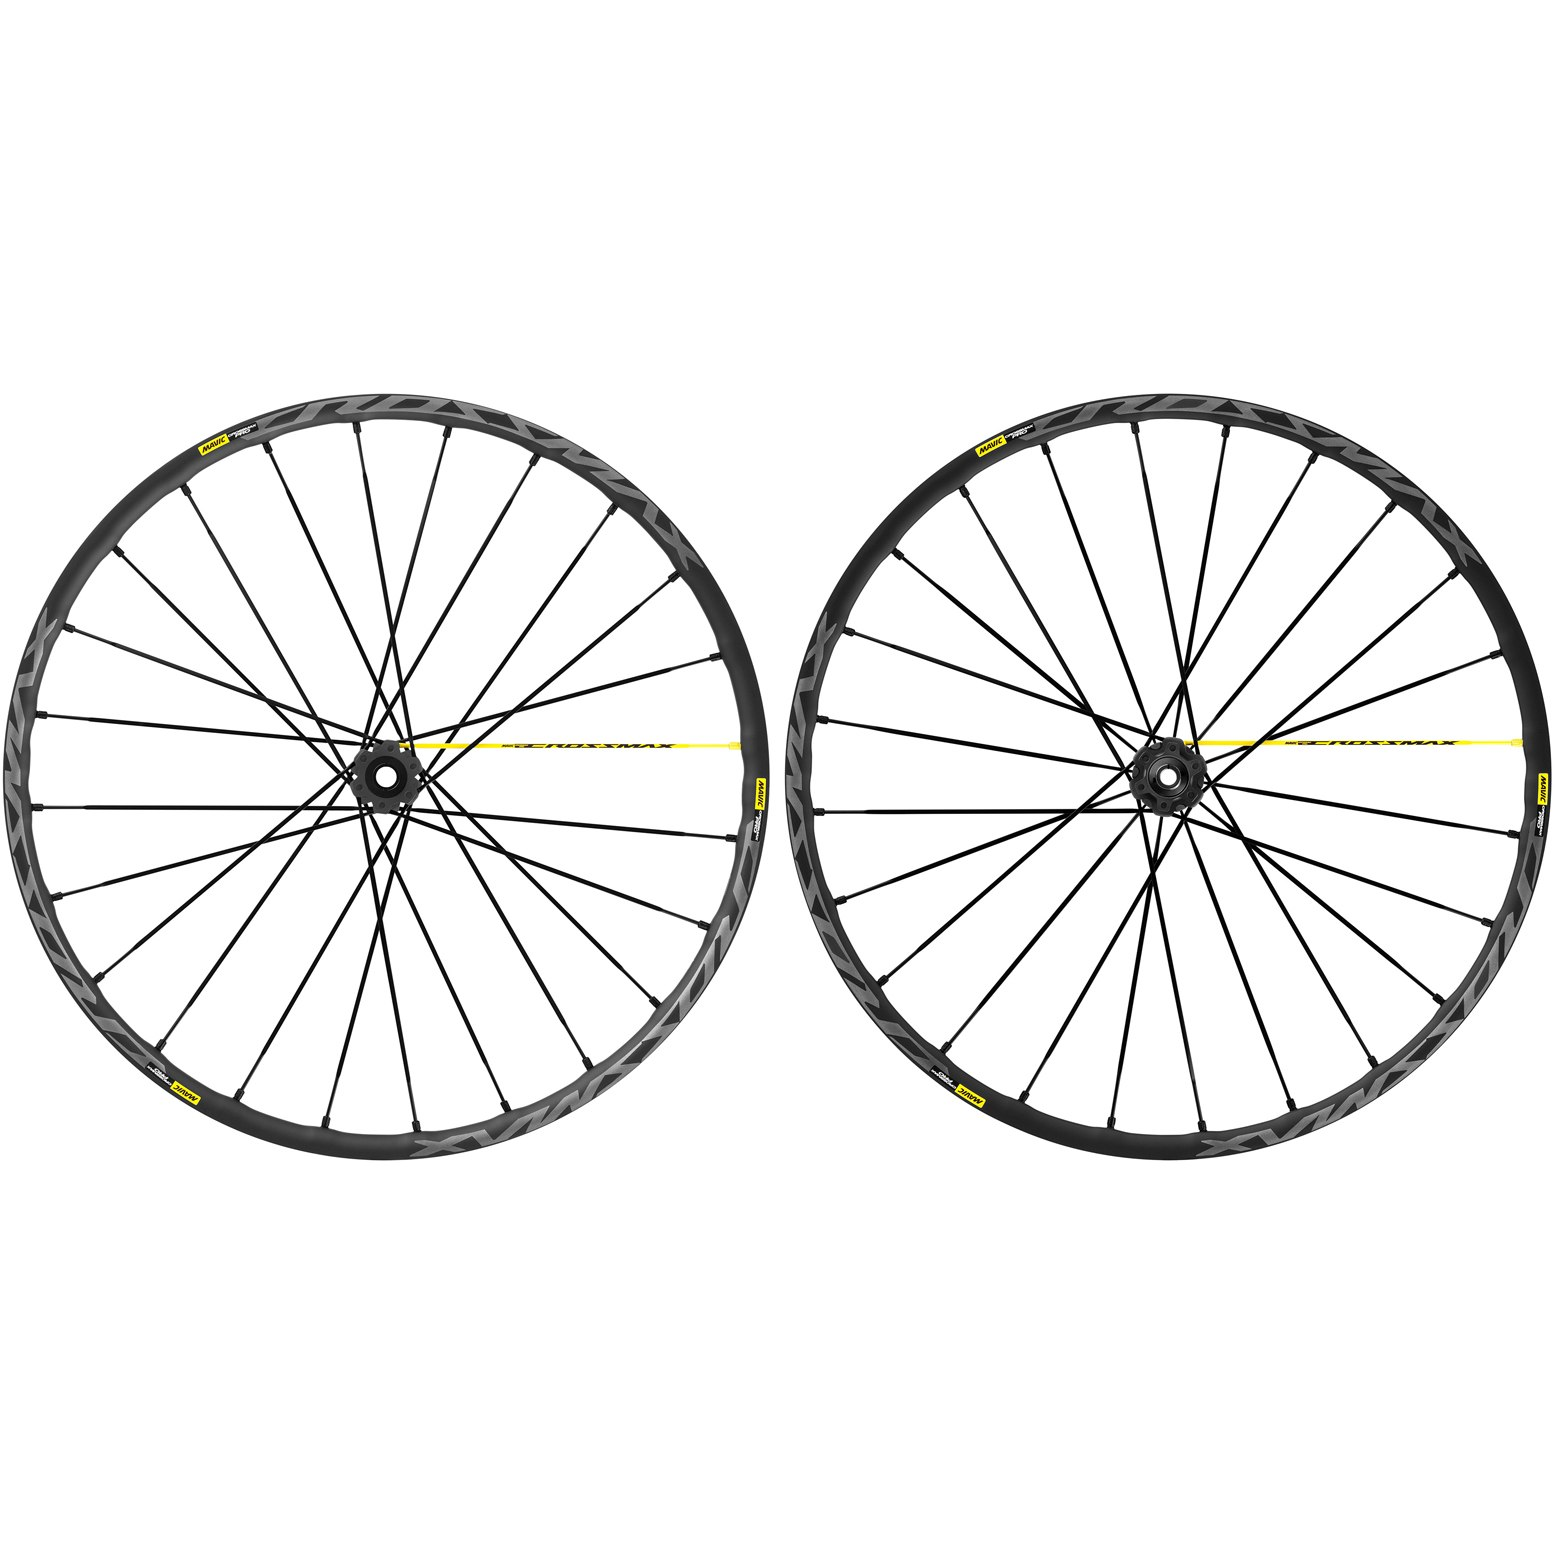 mavic-cannondale-lefty-crossmax-wheels-jooksud.jpg